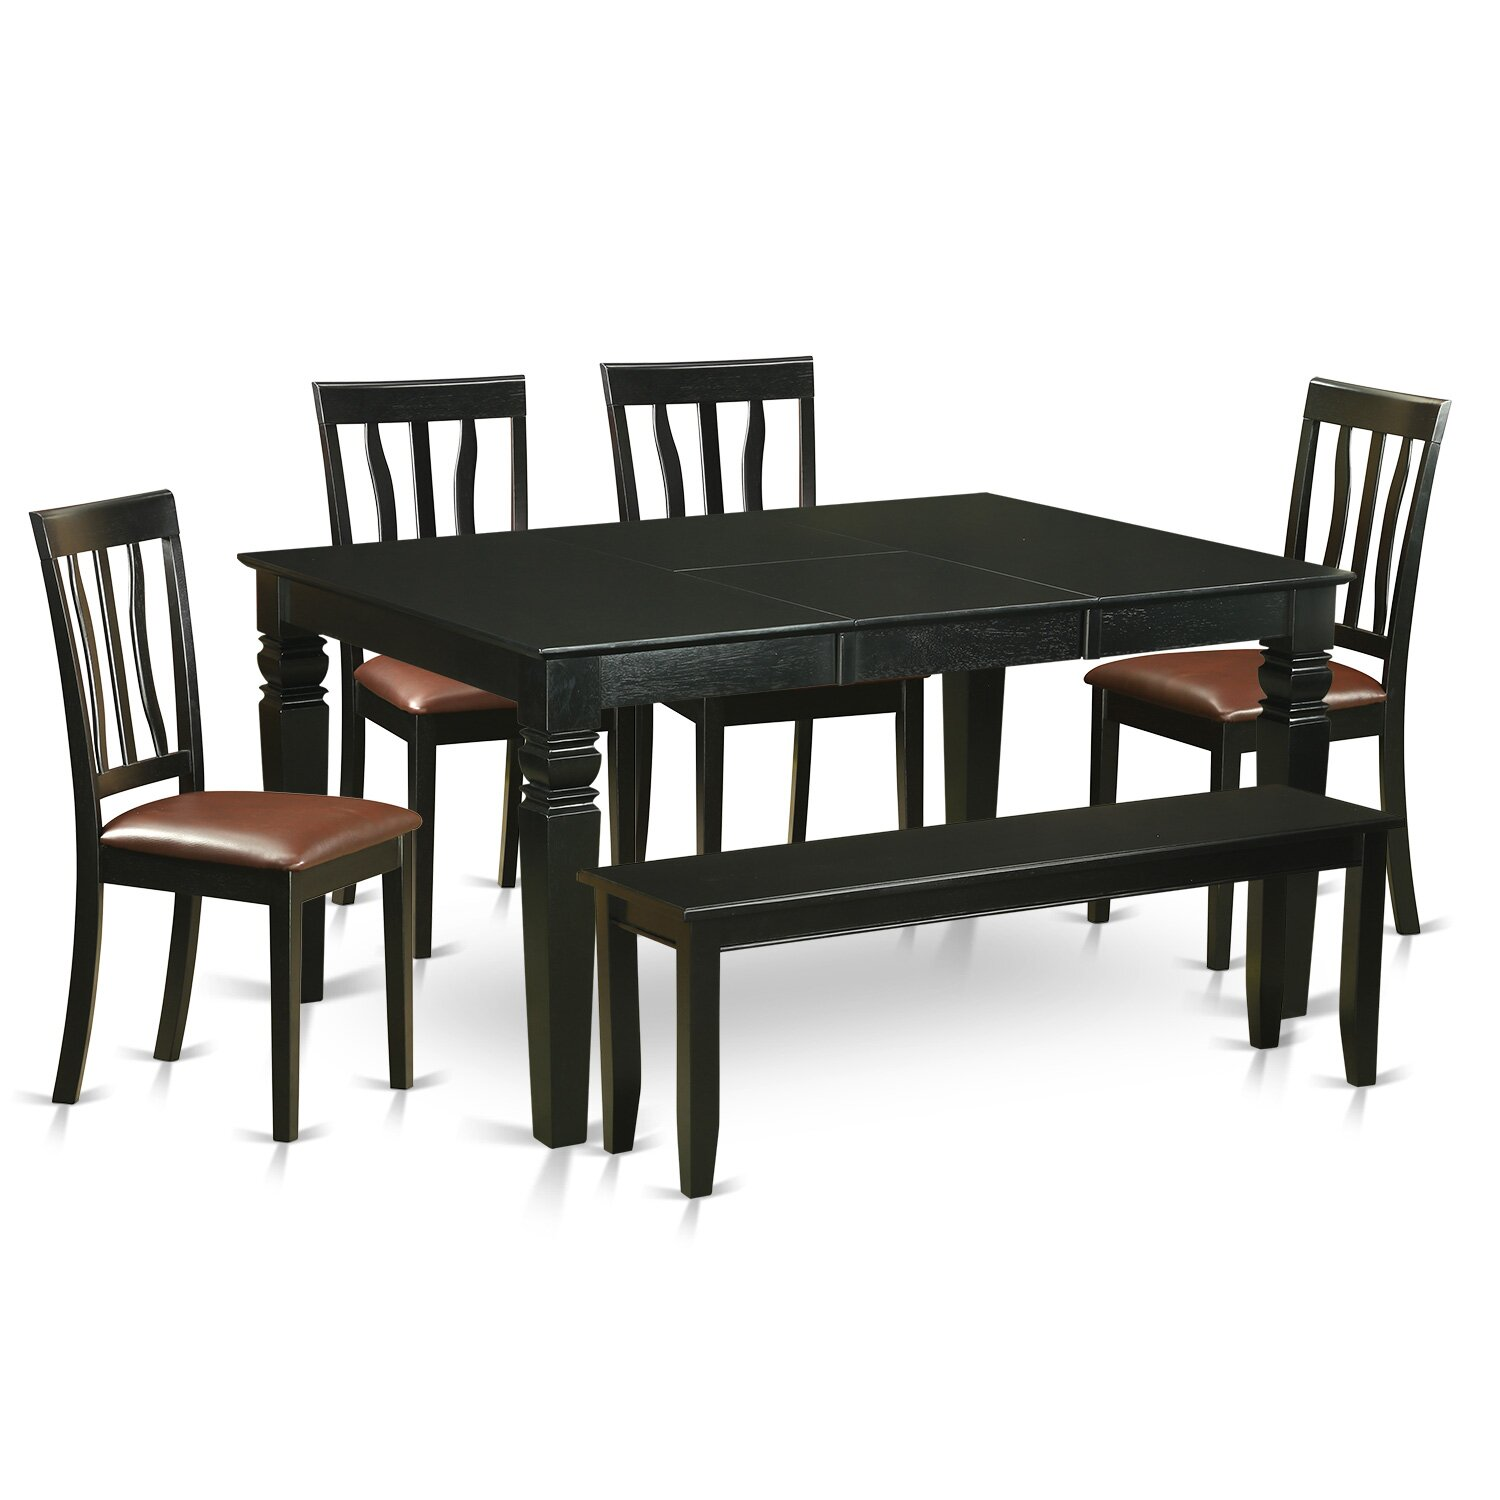 Wooden importers weston 6 piece dining set wayfair for Dinner table set for 4